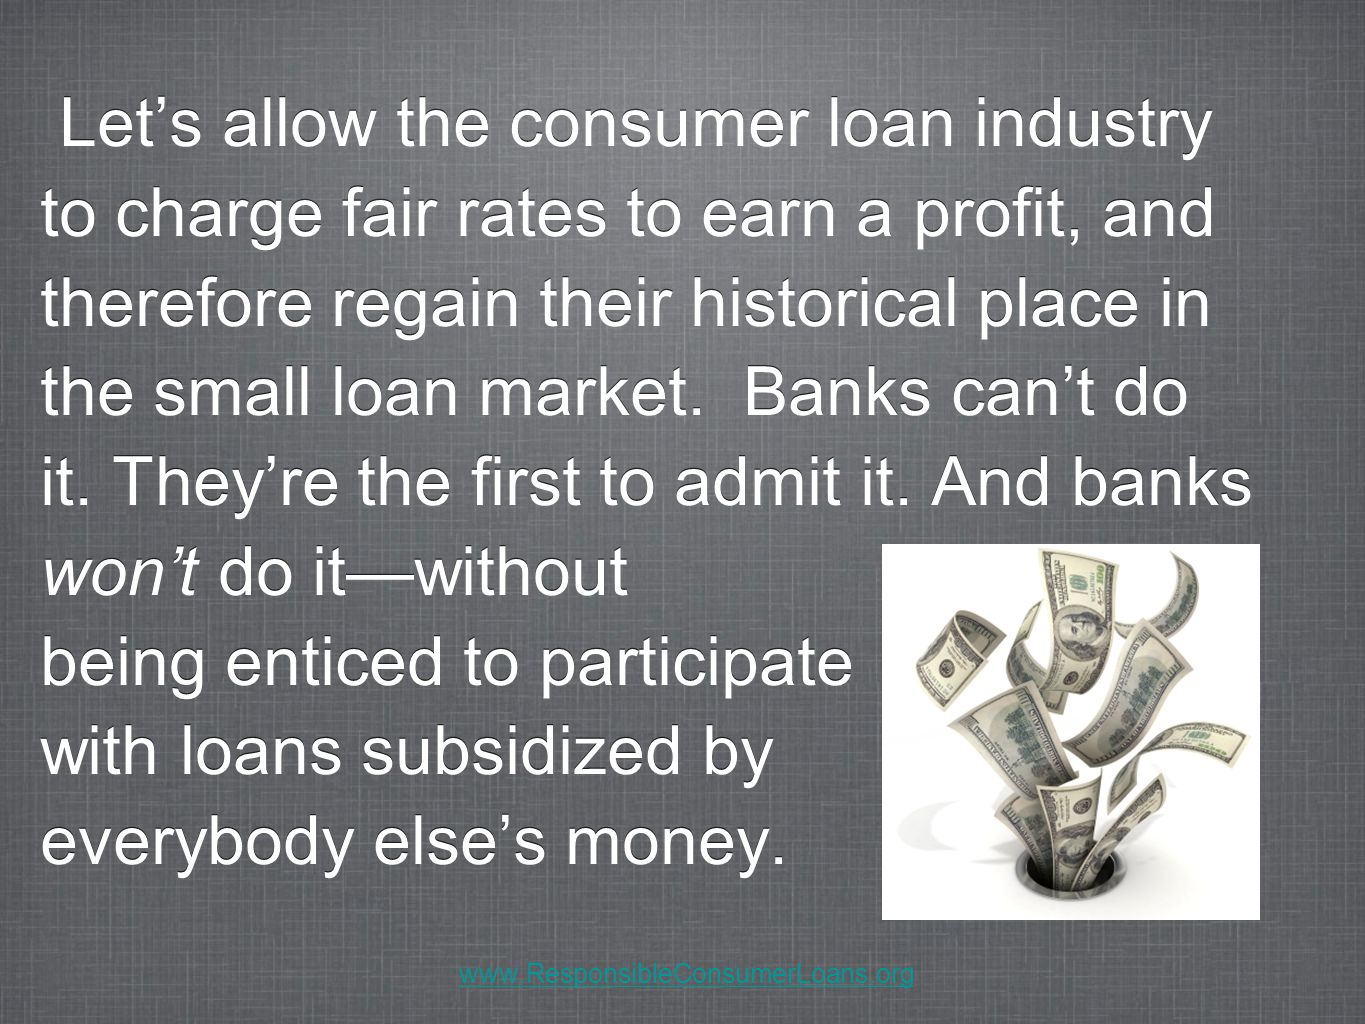 Let's allow the consumer loan industry to charge fair rates to earn a profit, and therefore regain their historical place in the small loan market.